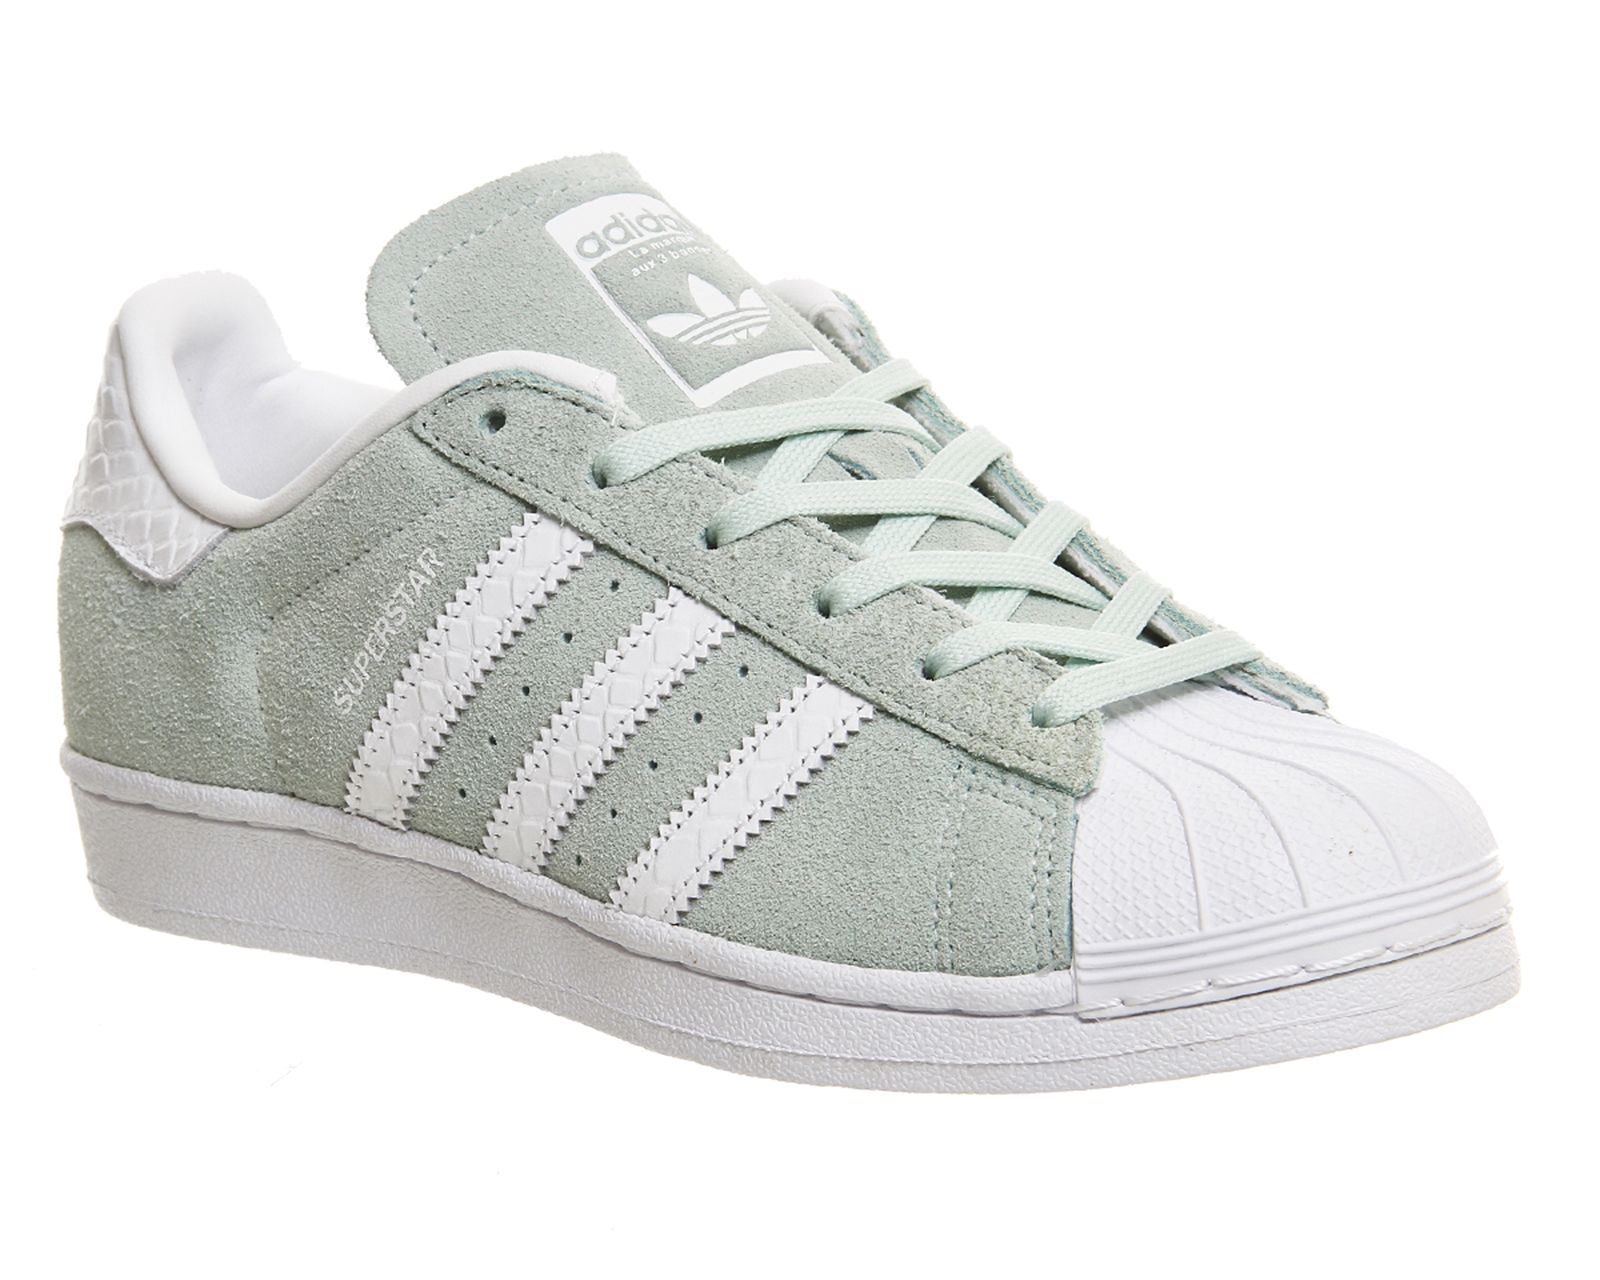 Amazon.com: adidas womens shoes - Prime Eligible / adidas / Women:  Clothing, Shoes & Jewelry